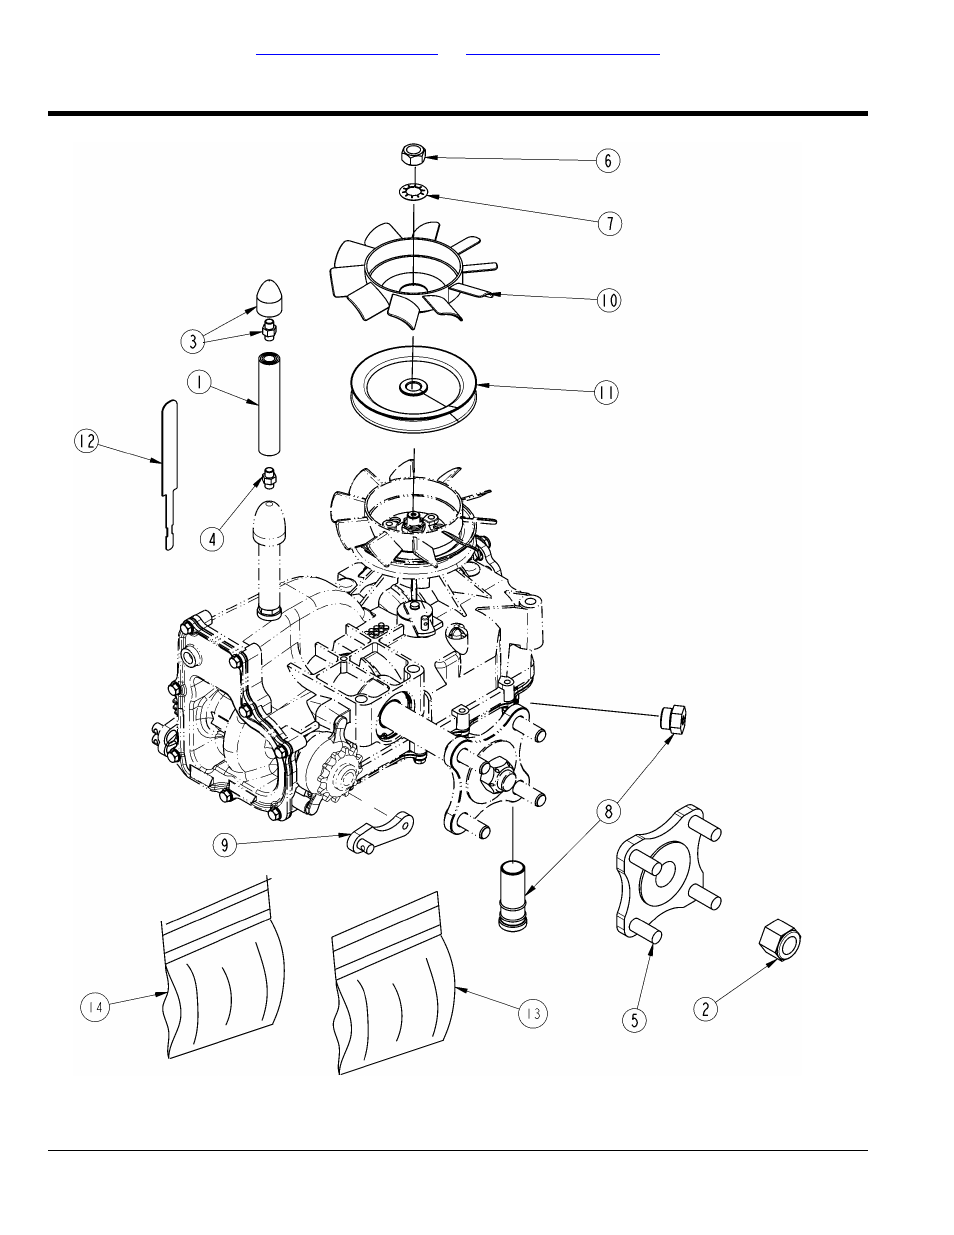 Transmission components 356-548s and 356-549s, Table of